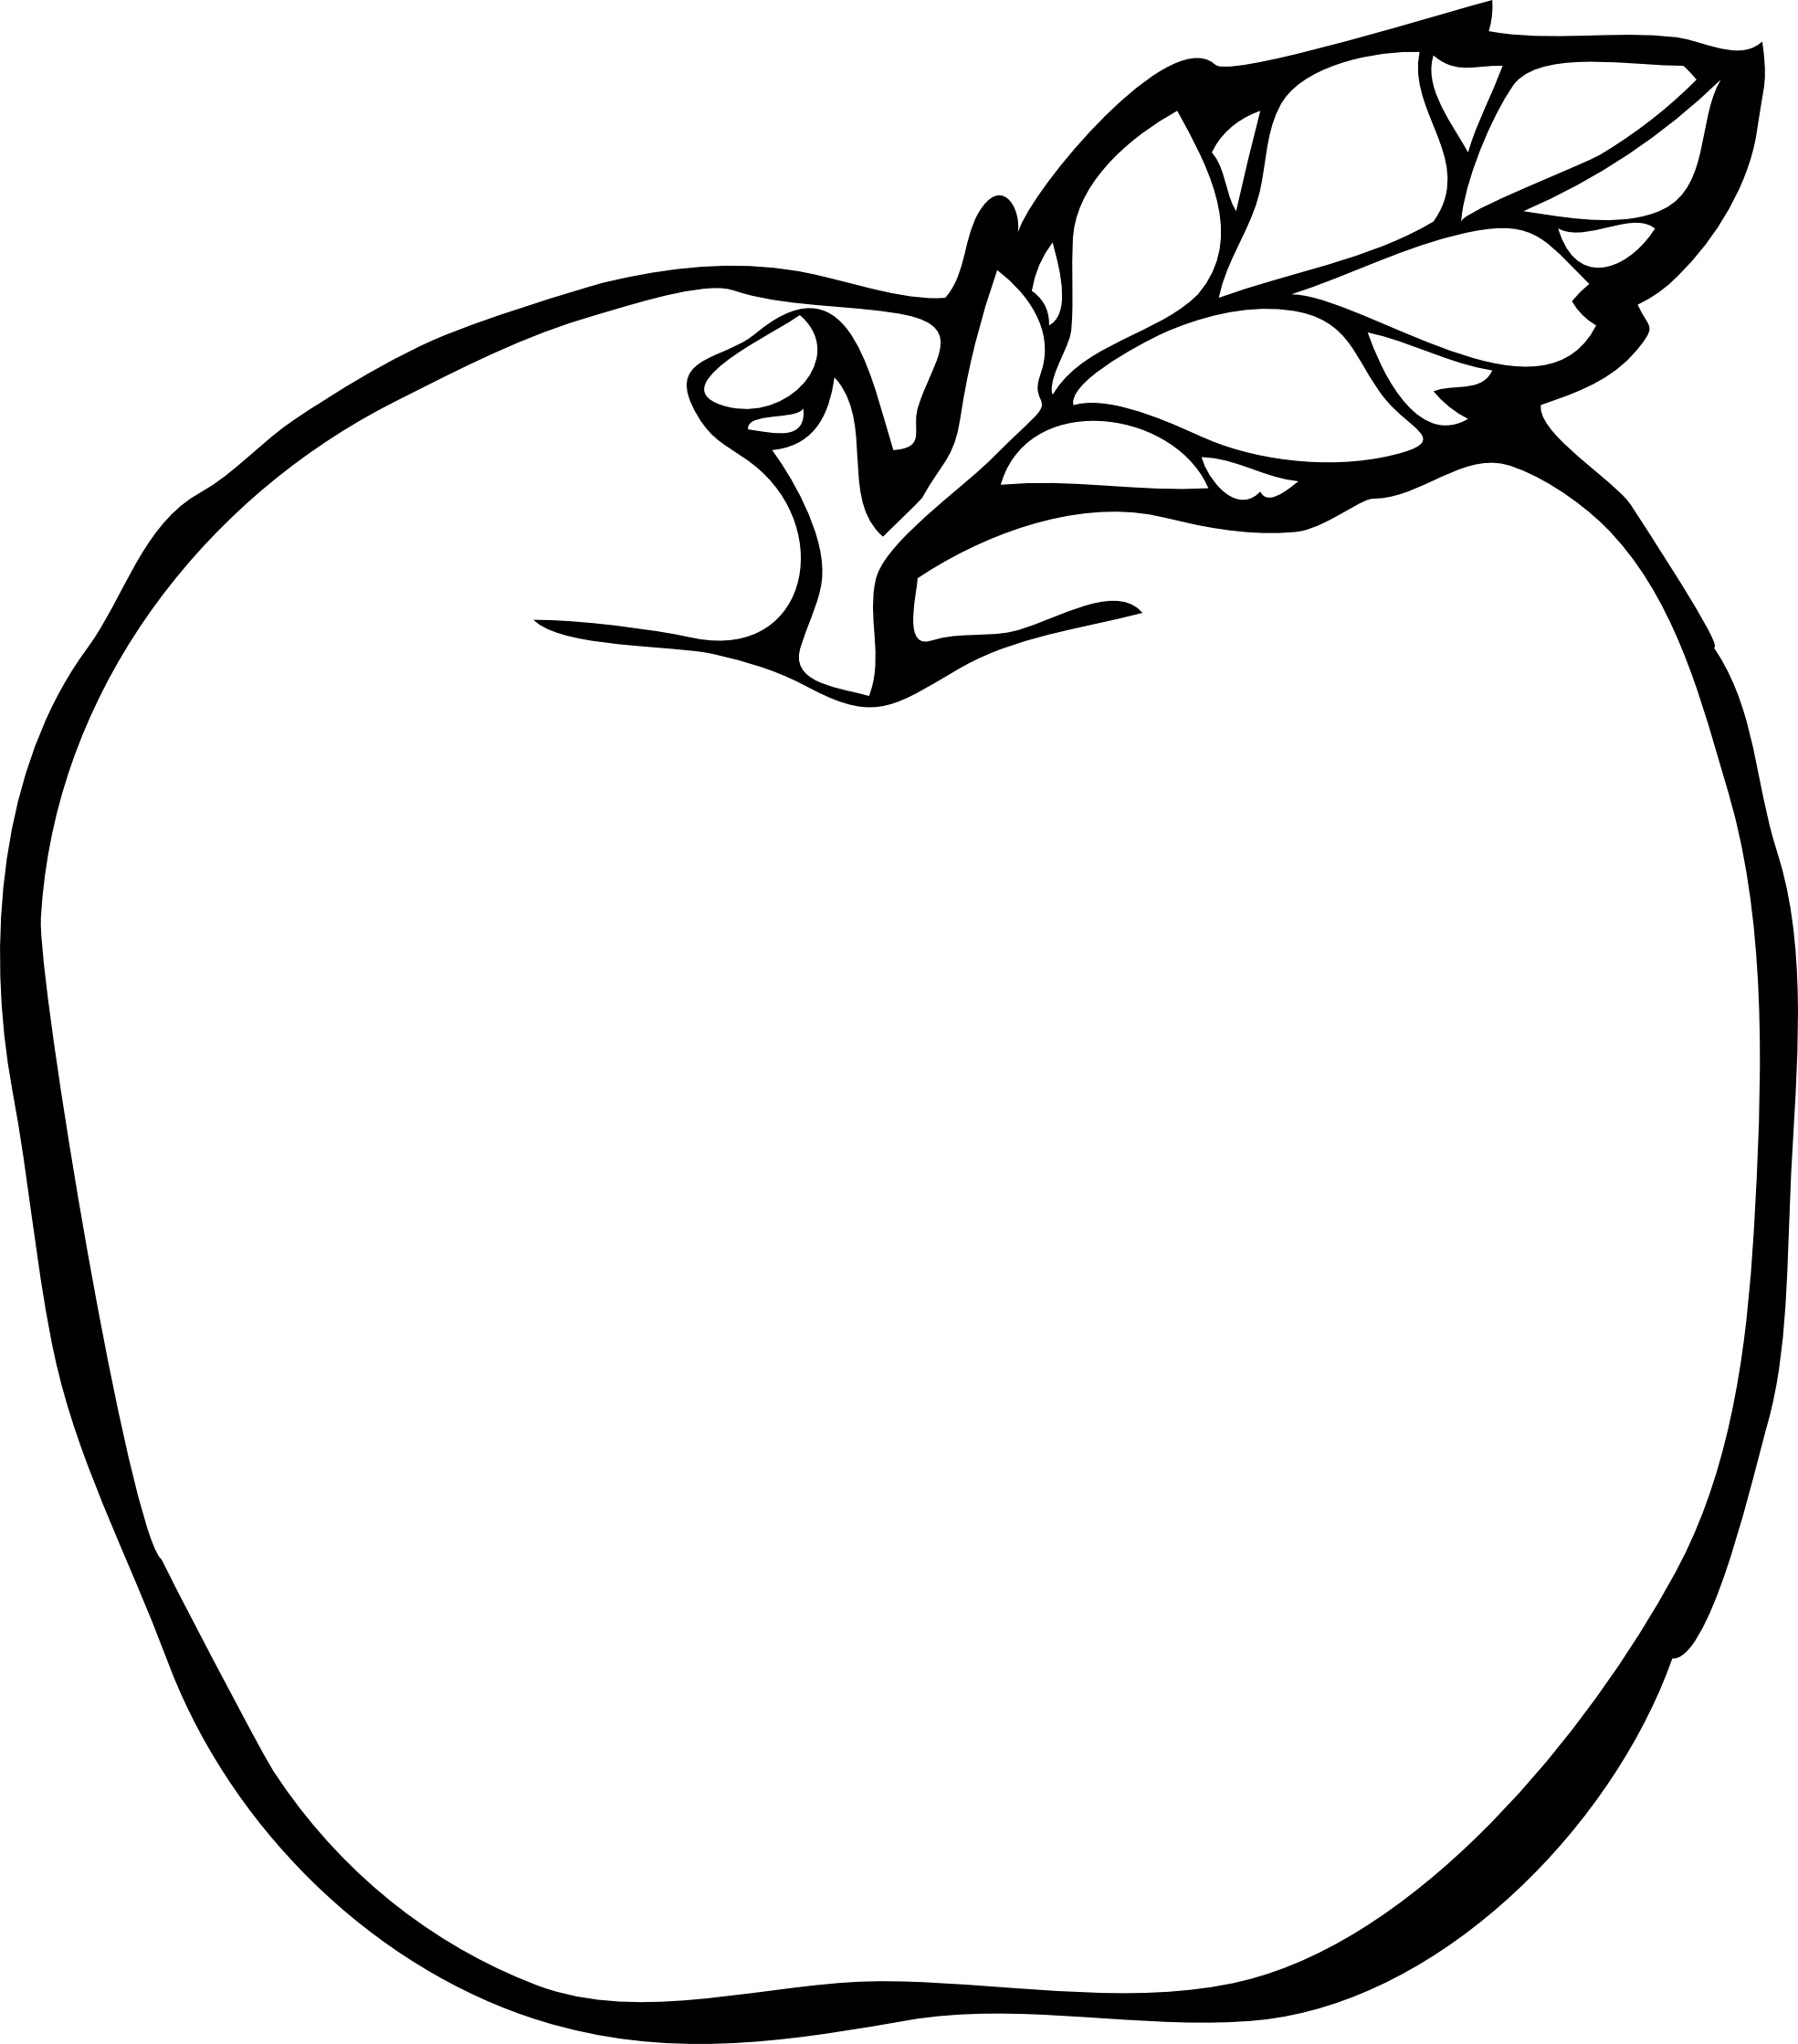 Drawn apple #9